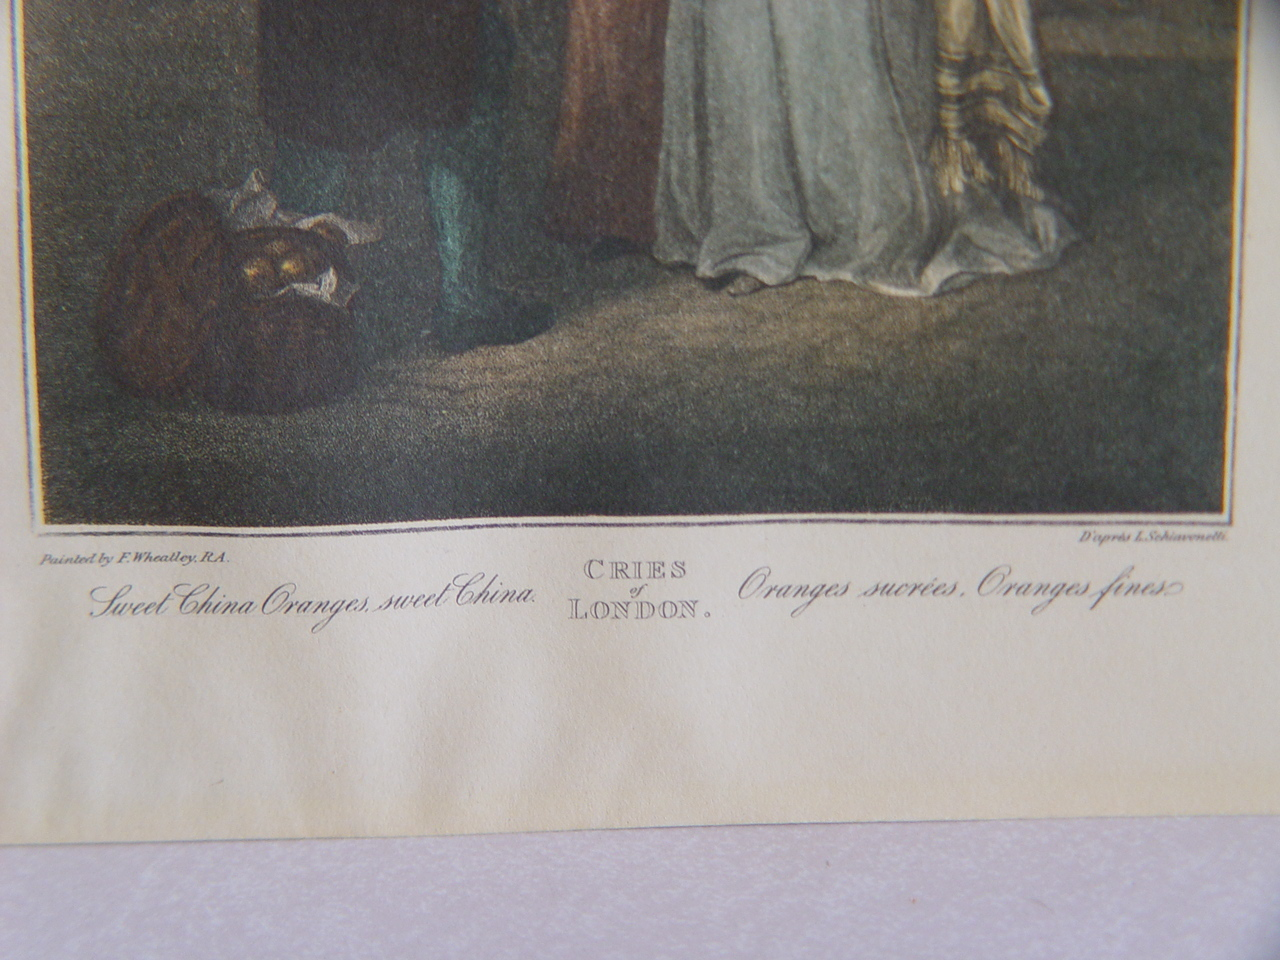 Two Hand colored Engravings of Cries of London by L. Schiavo